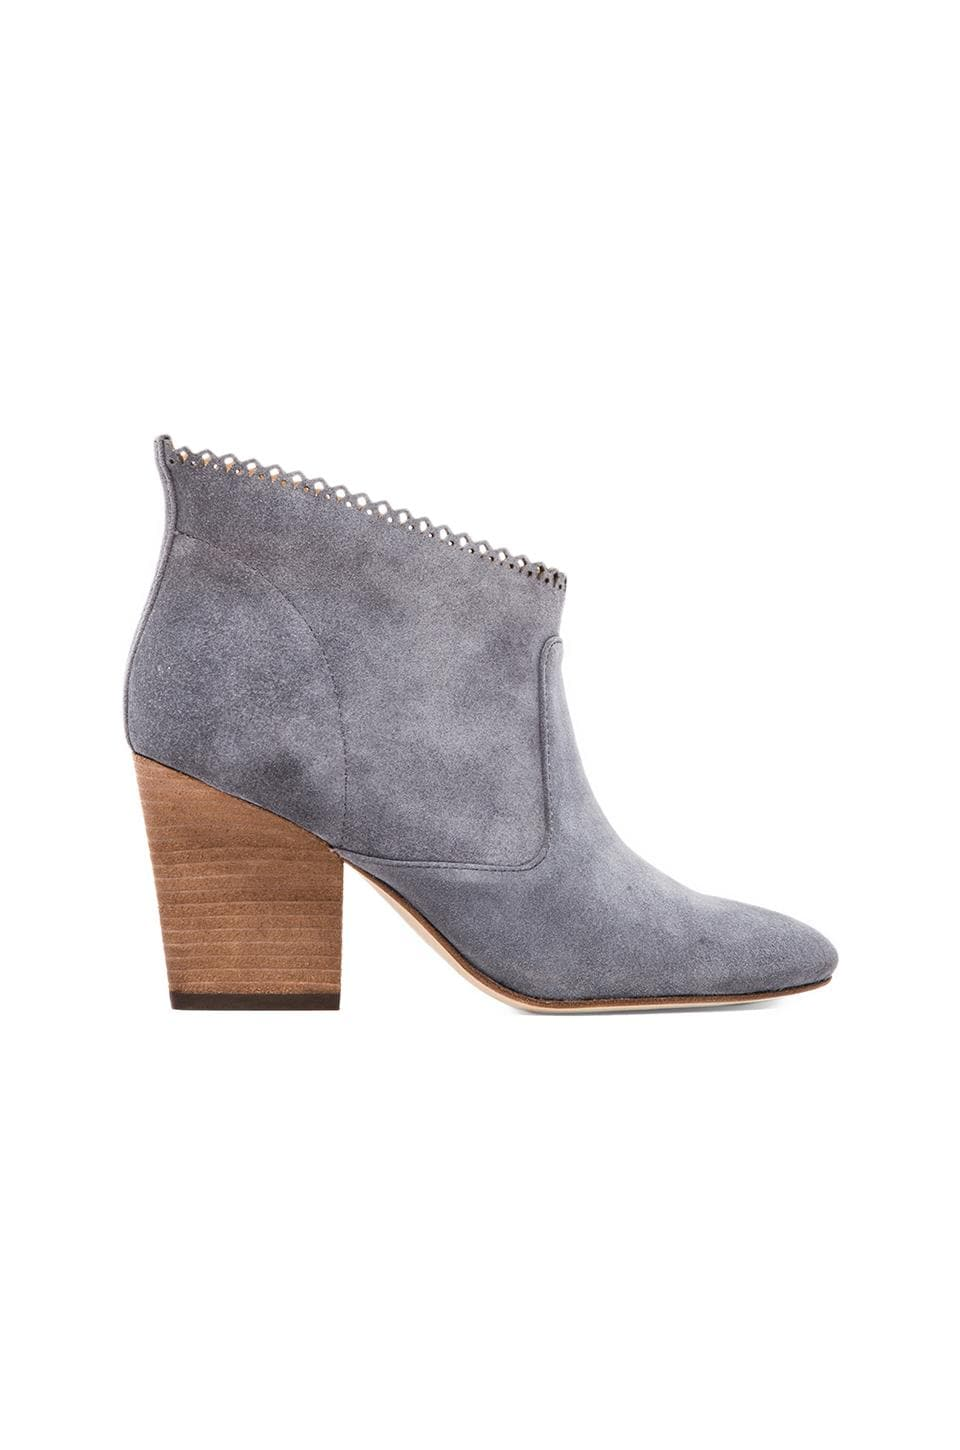 Belle by Sigerson Morrison Nikki Bootie in Denim